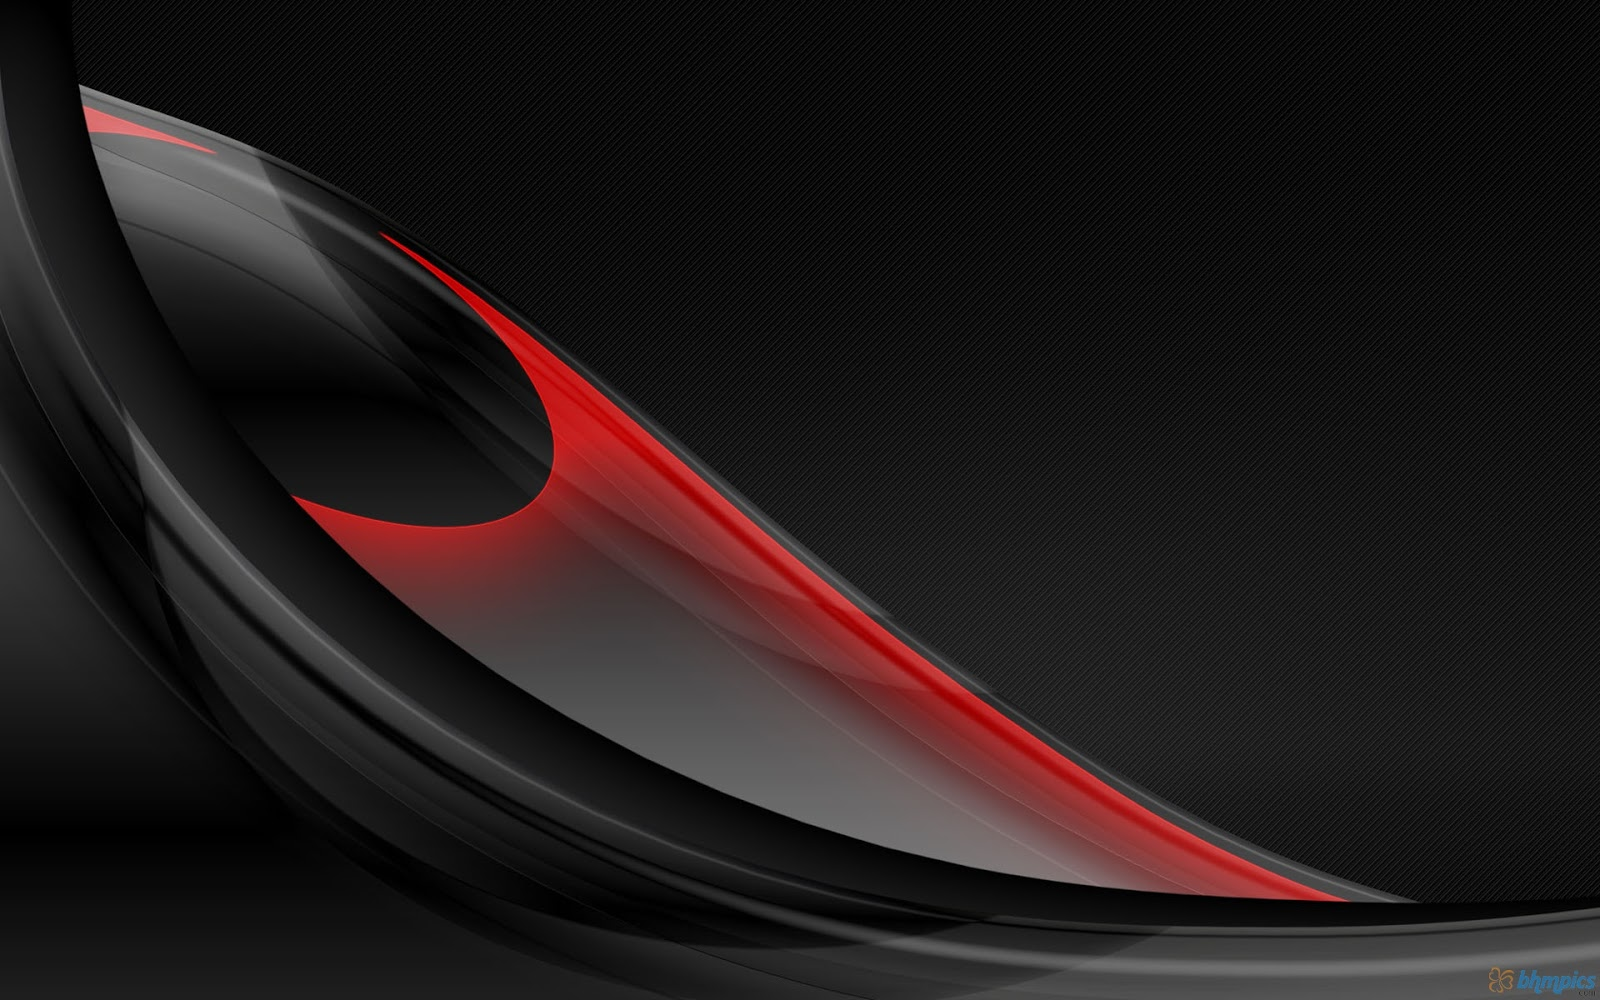 http://1.bp.blogspot.com/-2OC8bg4lXVI/UIAFtzCv3qI/AAAAAAAAGV8/Lt-7bscEekI/s1600/abstract_black_red-1920x1200.jpg